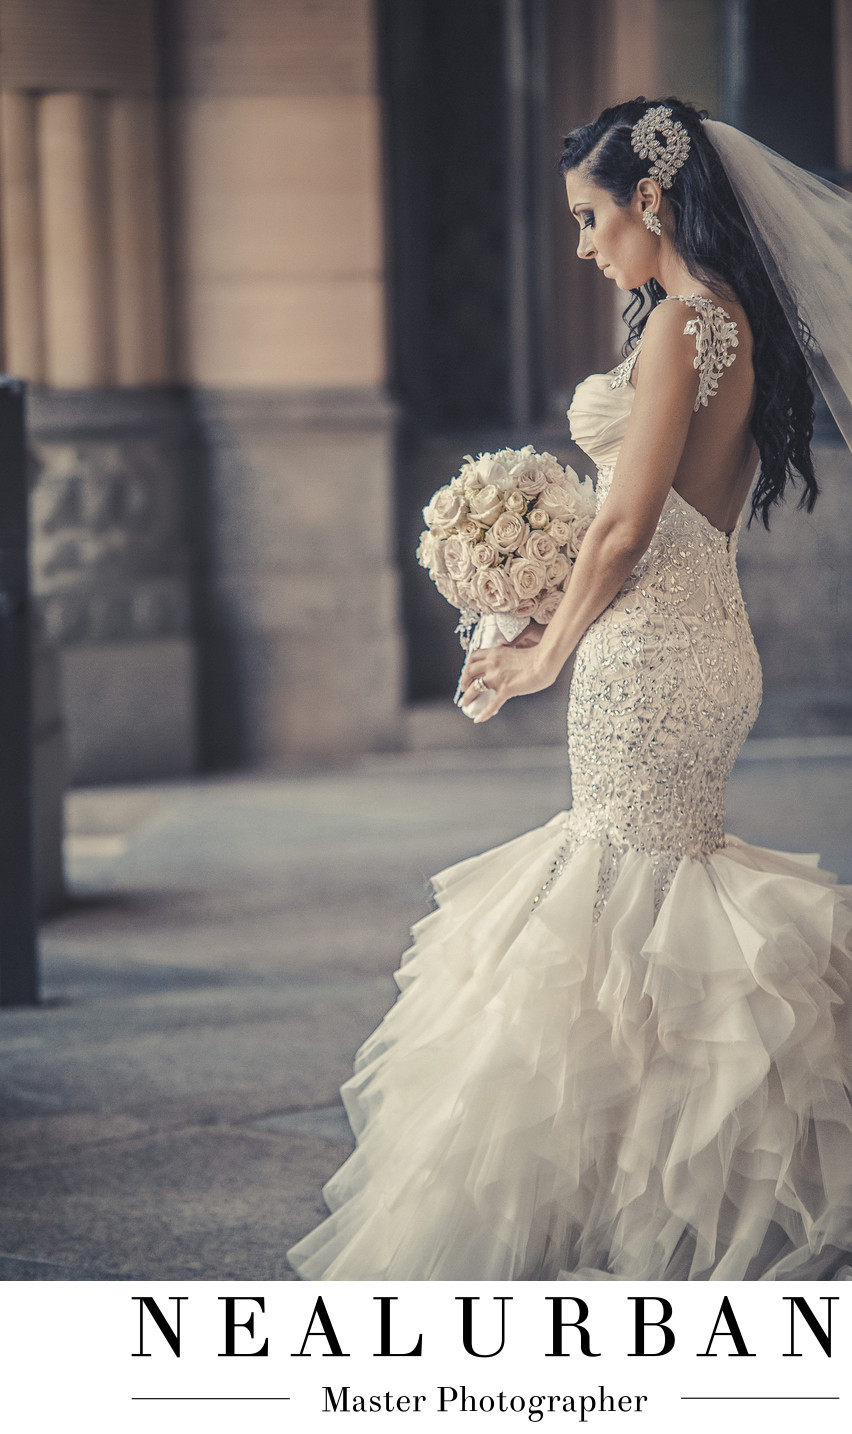 buffalo wedding city hall photography pillars bride dress